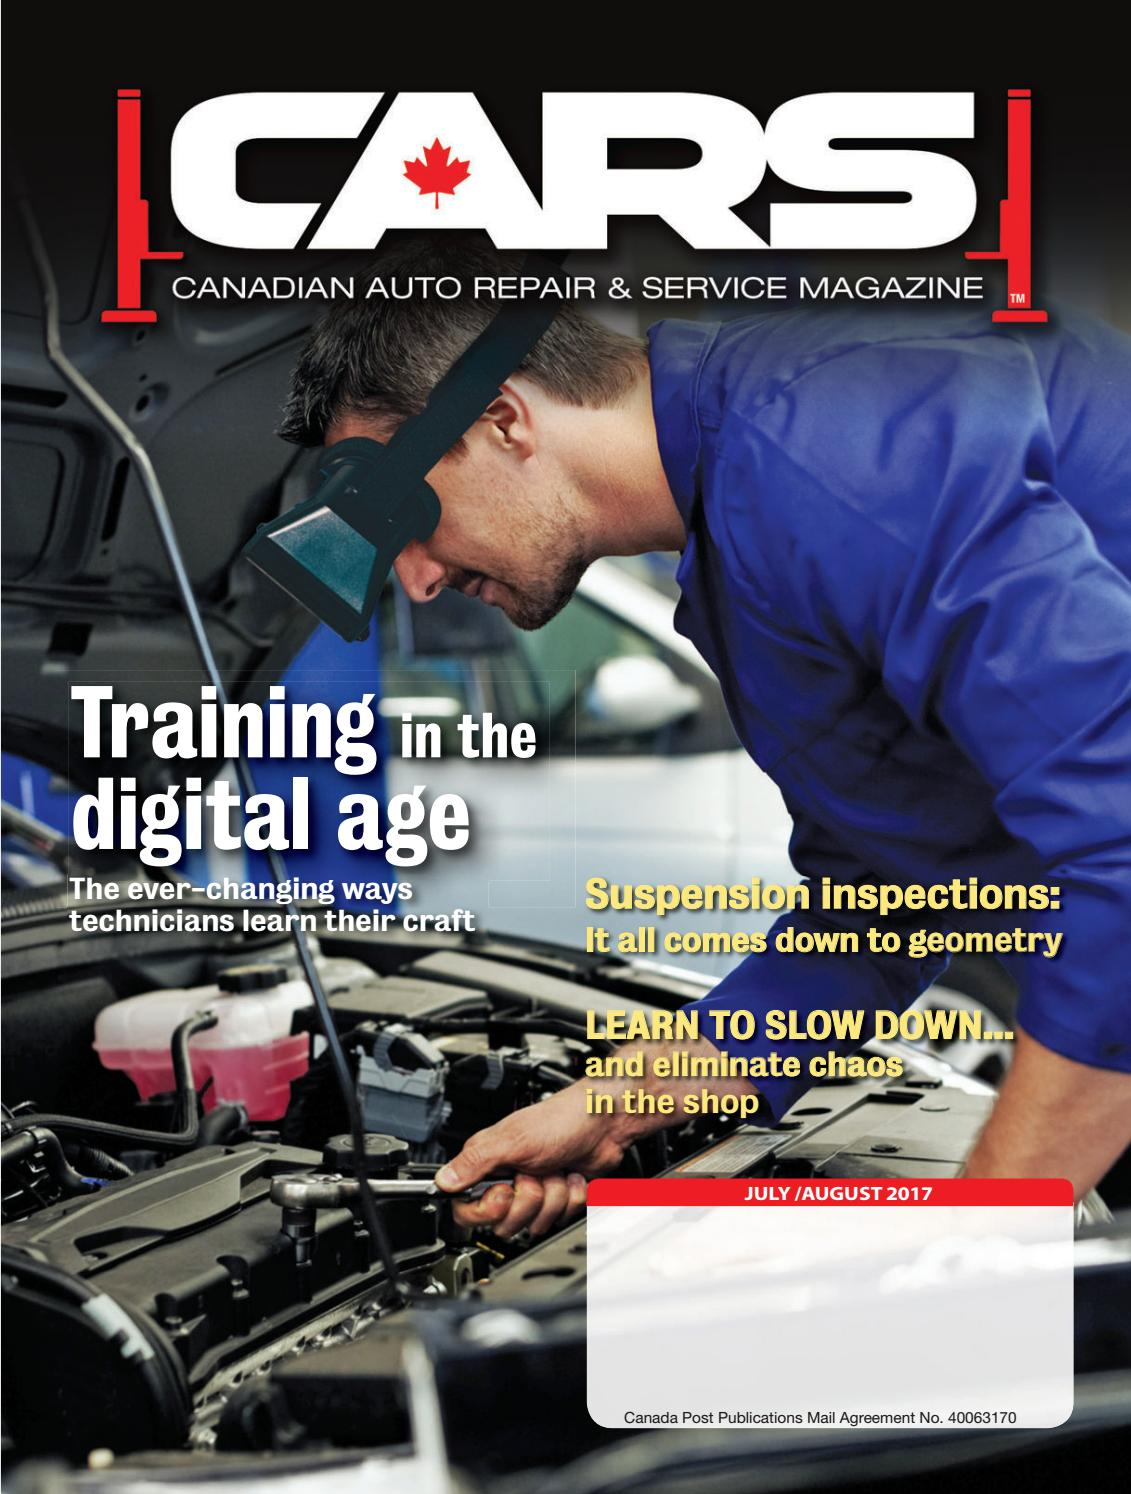 Cars July August 2017 By Annex Newcom Lp Issuu Auto Wiring Diagram Library Oem 2000 Honda 4 Cylinder Front Oxygen Sensor